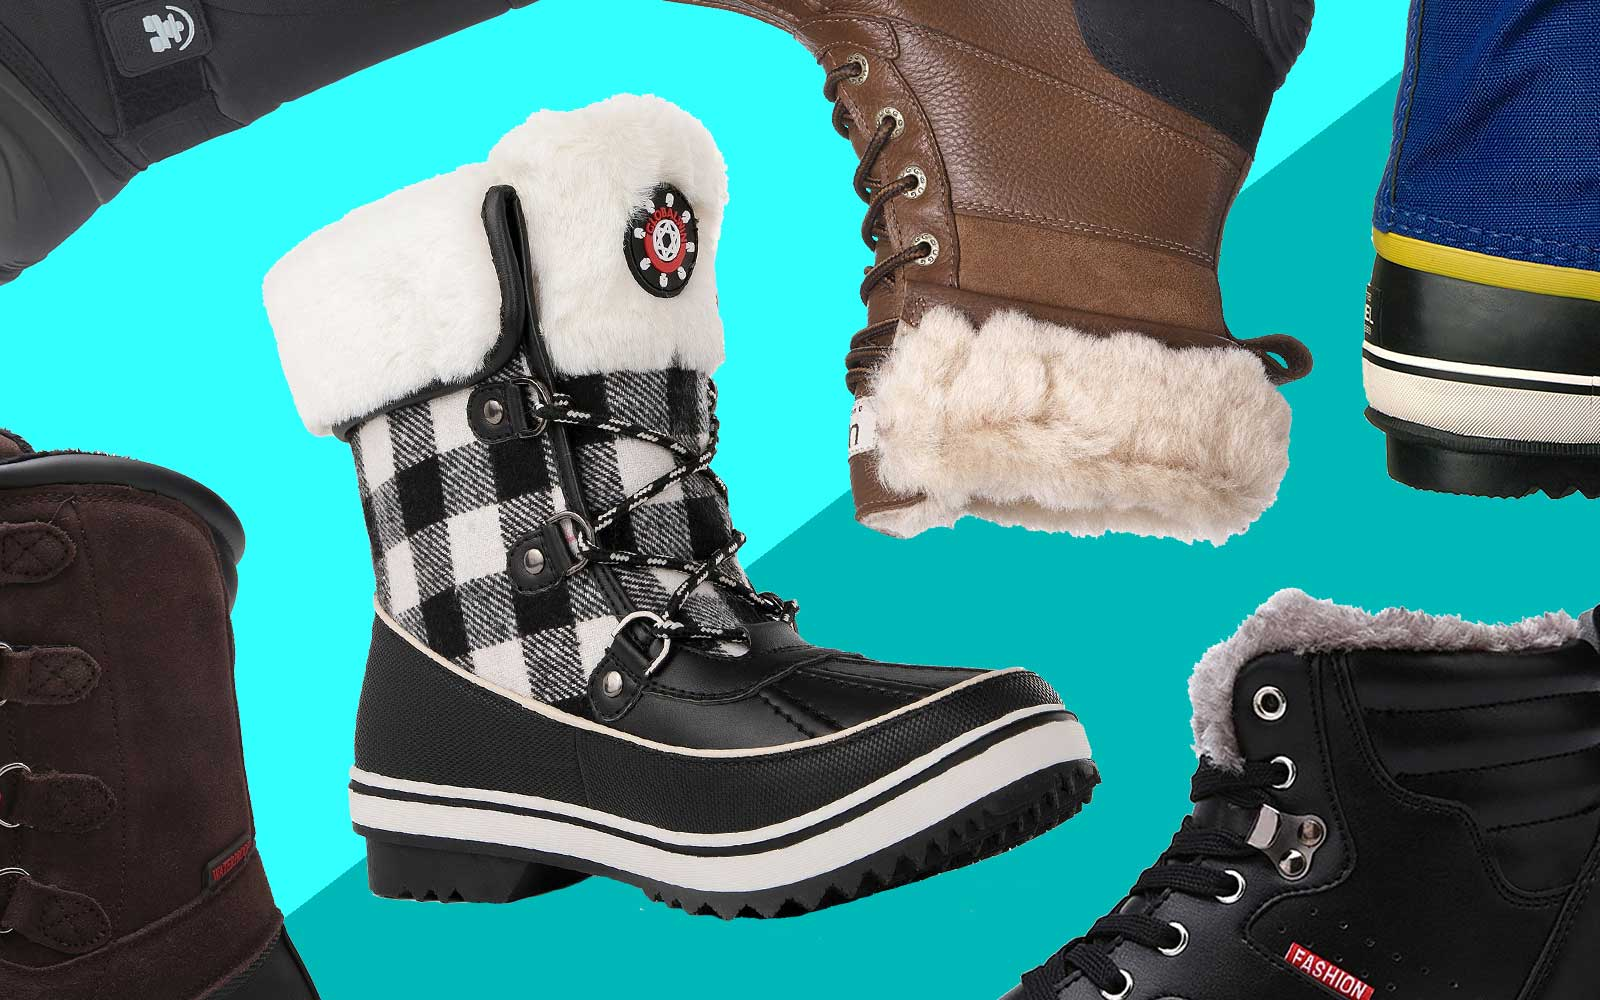 The Best Snow Boots You Can Get on Amazon